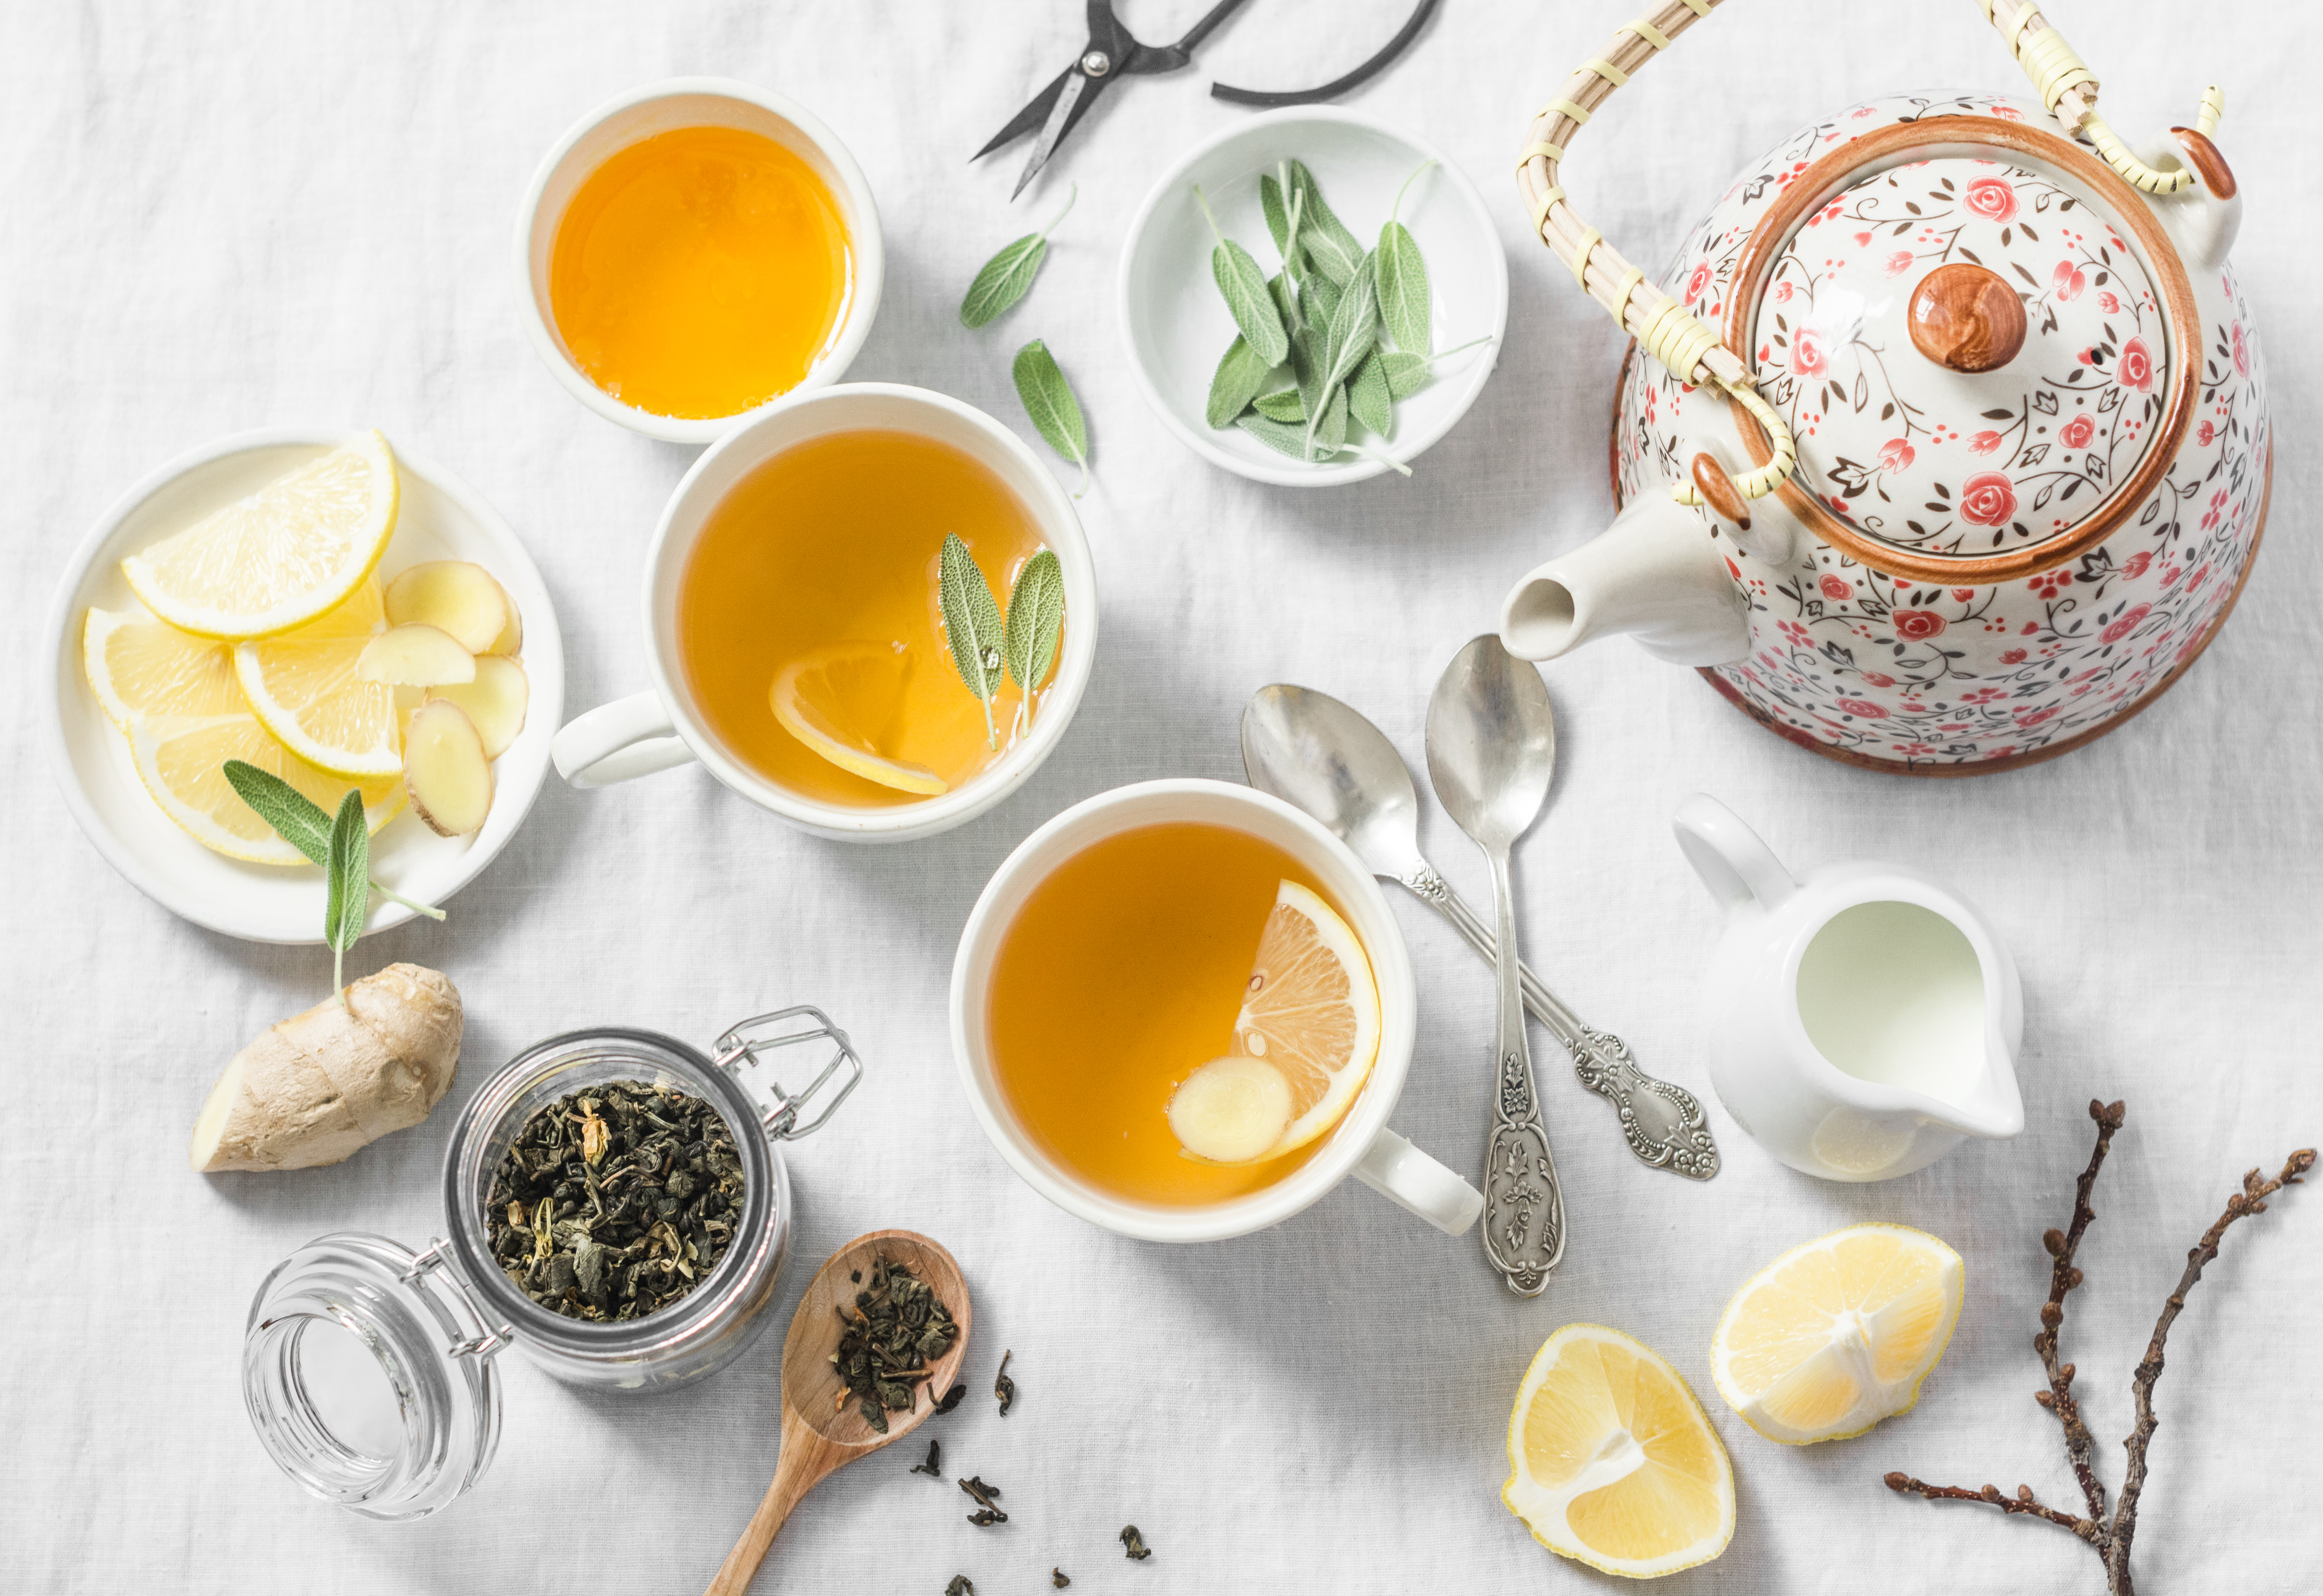 does white tea help reduce belly fat? | healthy eating | sf gate